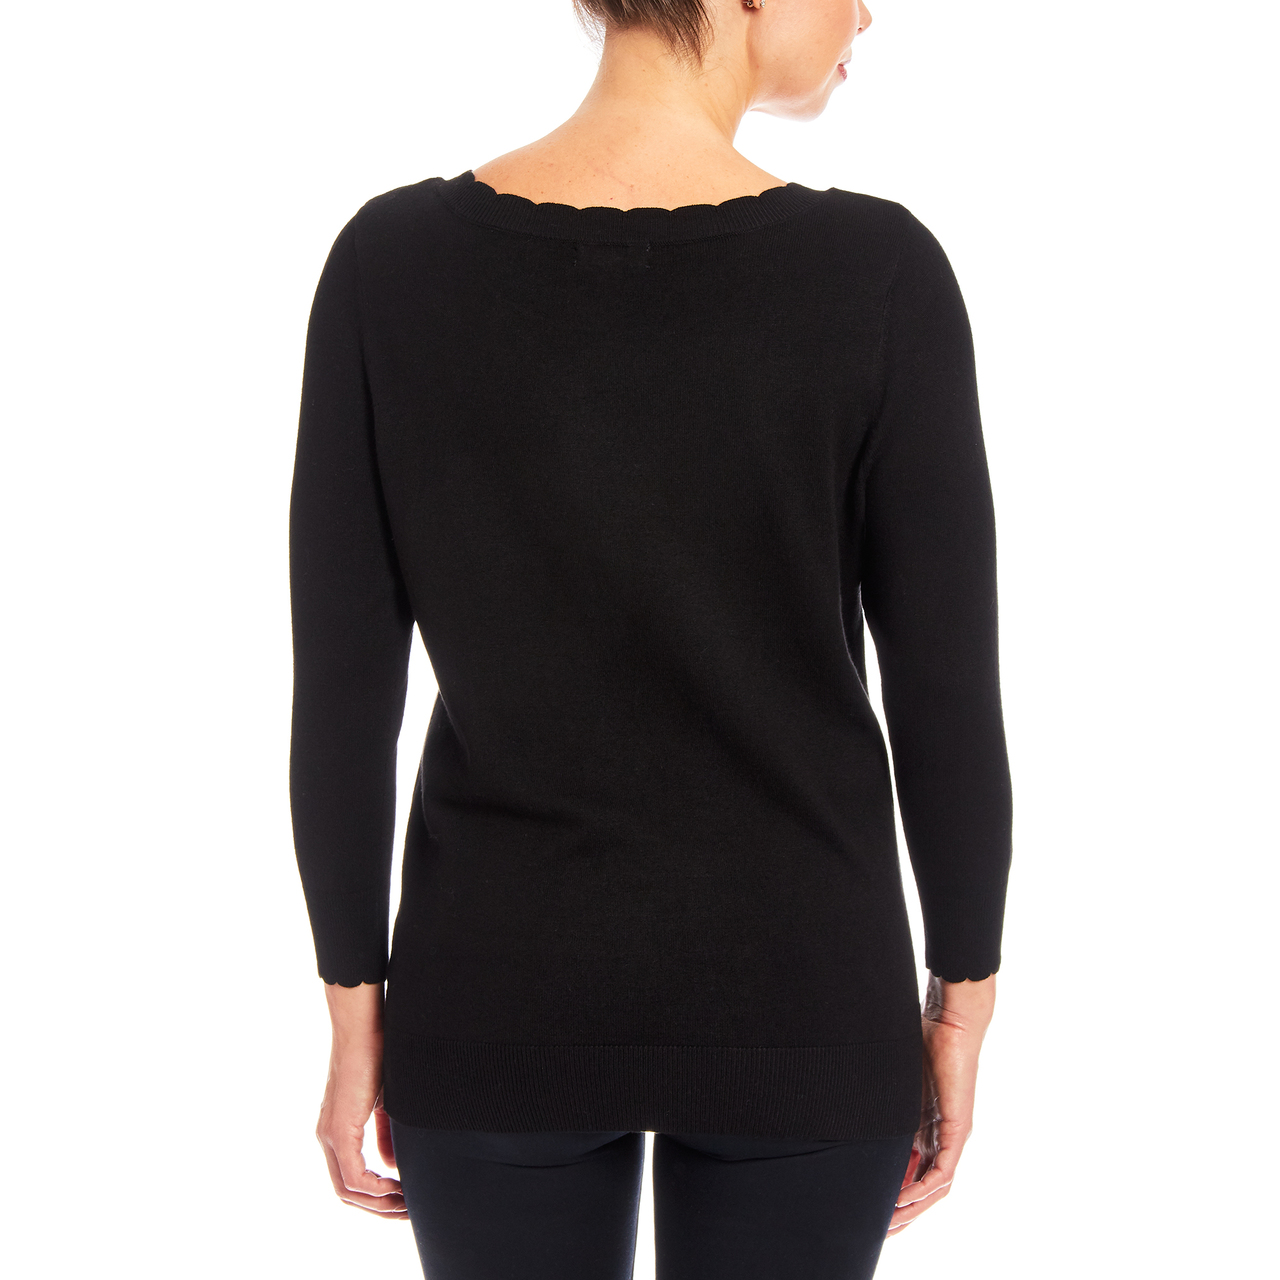 3/4 Sleeve Scallop Neck Sweater In Black